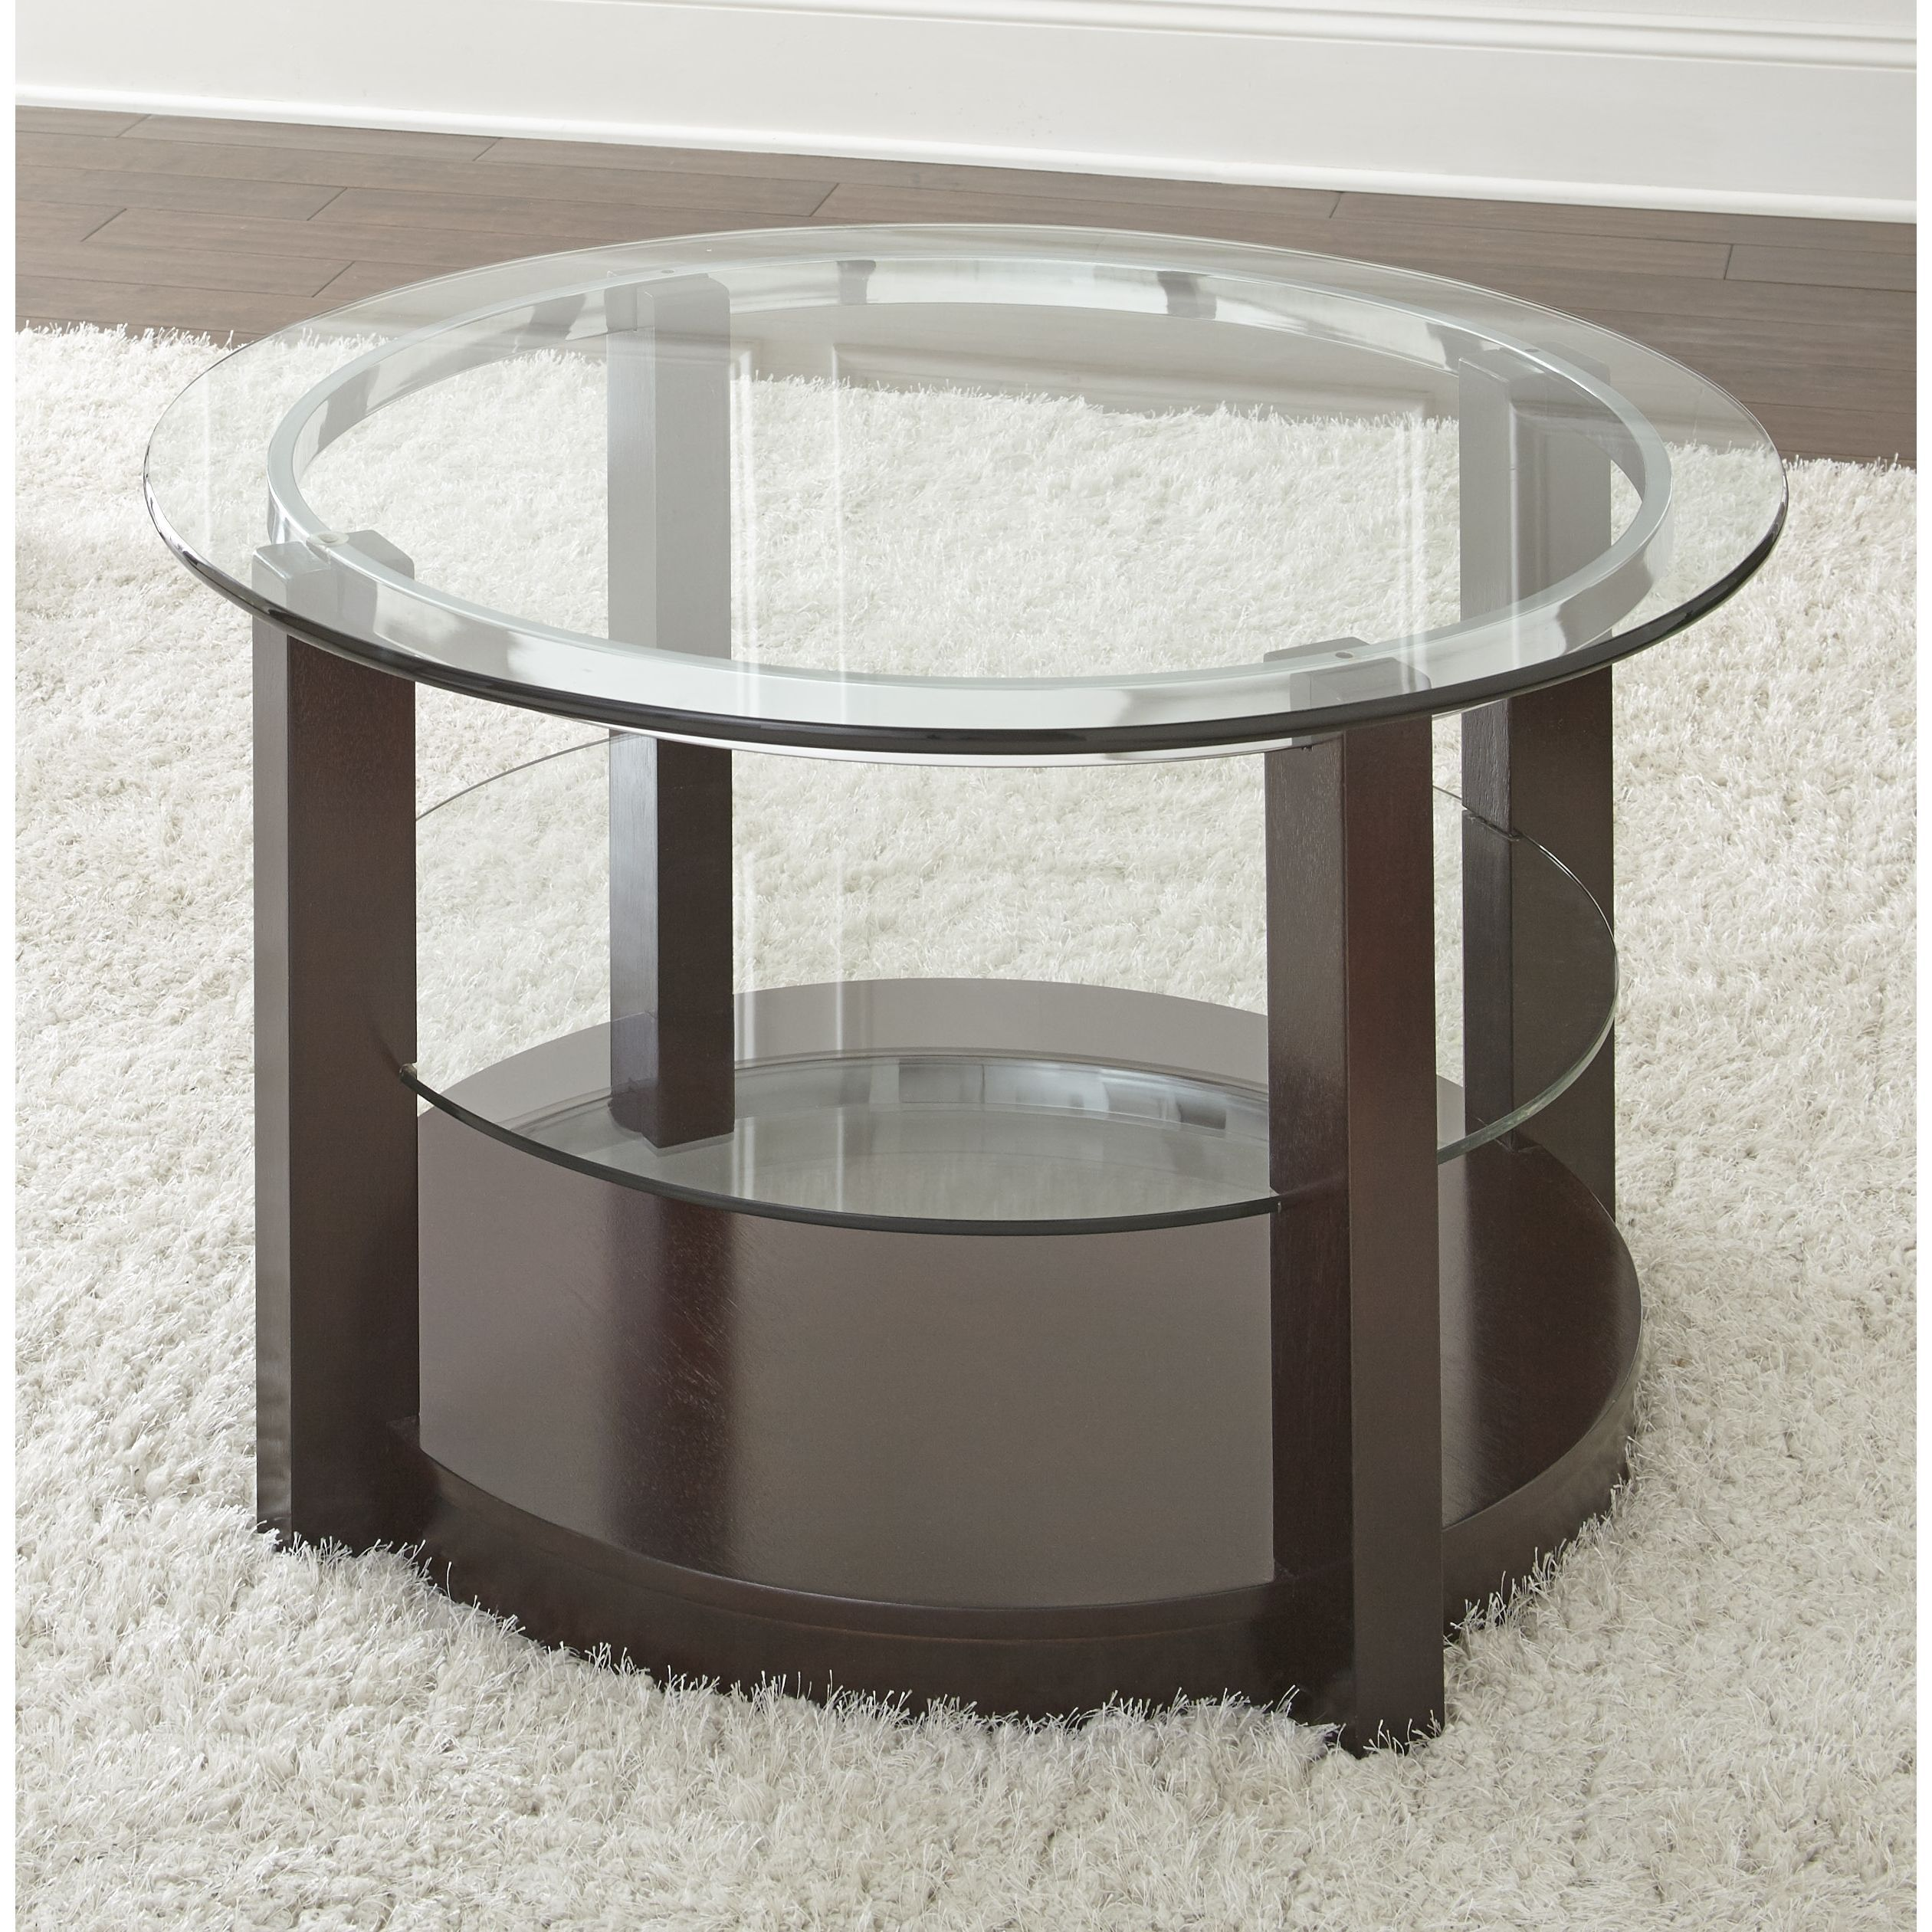 The sleek espresso finish and tempered glass top of the Crawley coffee table  will complement many styles. Accented by a decorative chrome ring, and tempered glass shelf, this table also features hidden casters for easy movement.